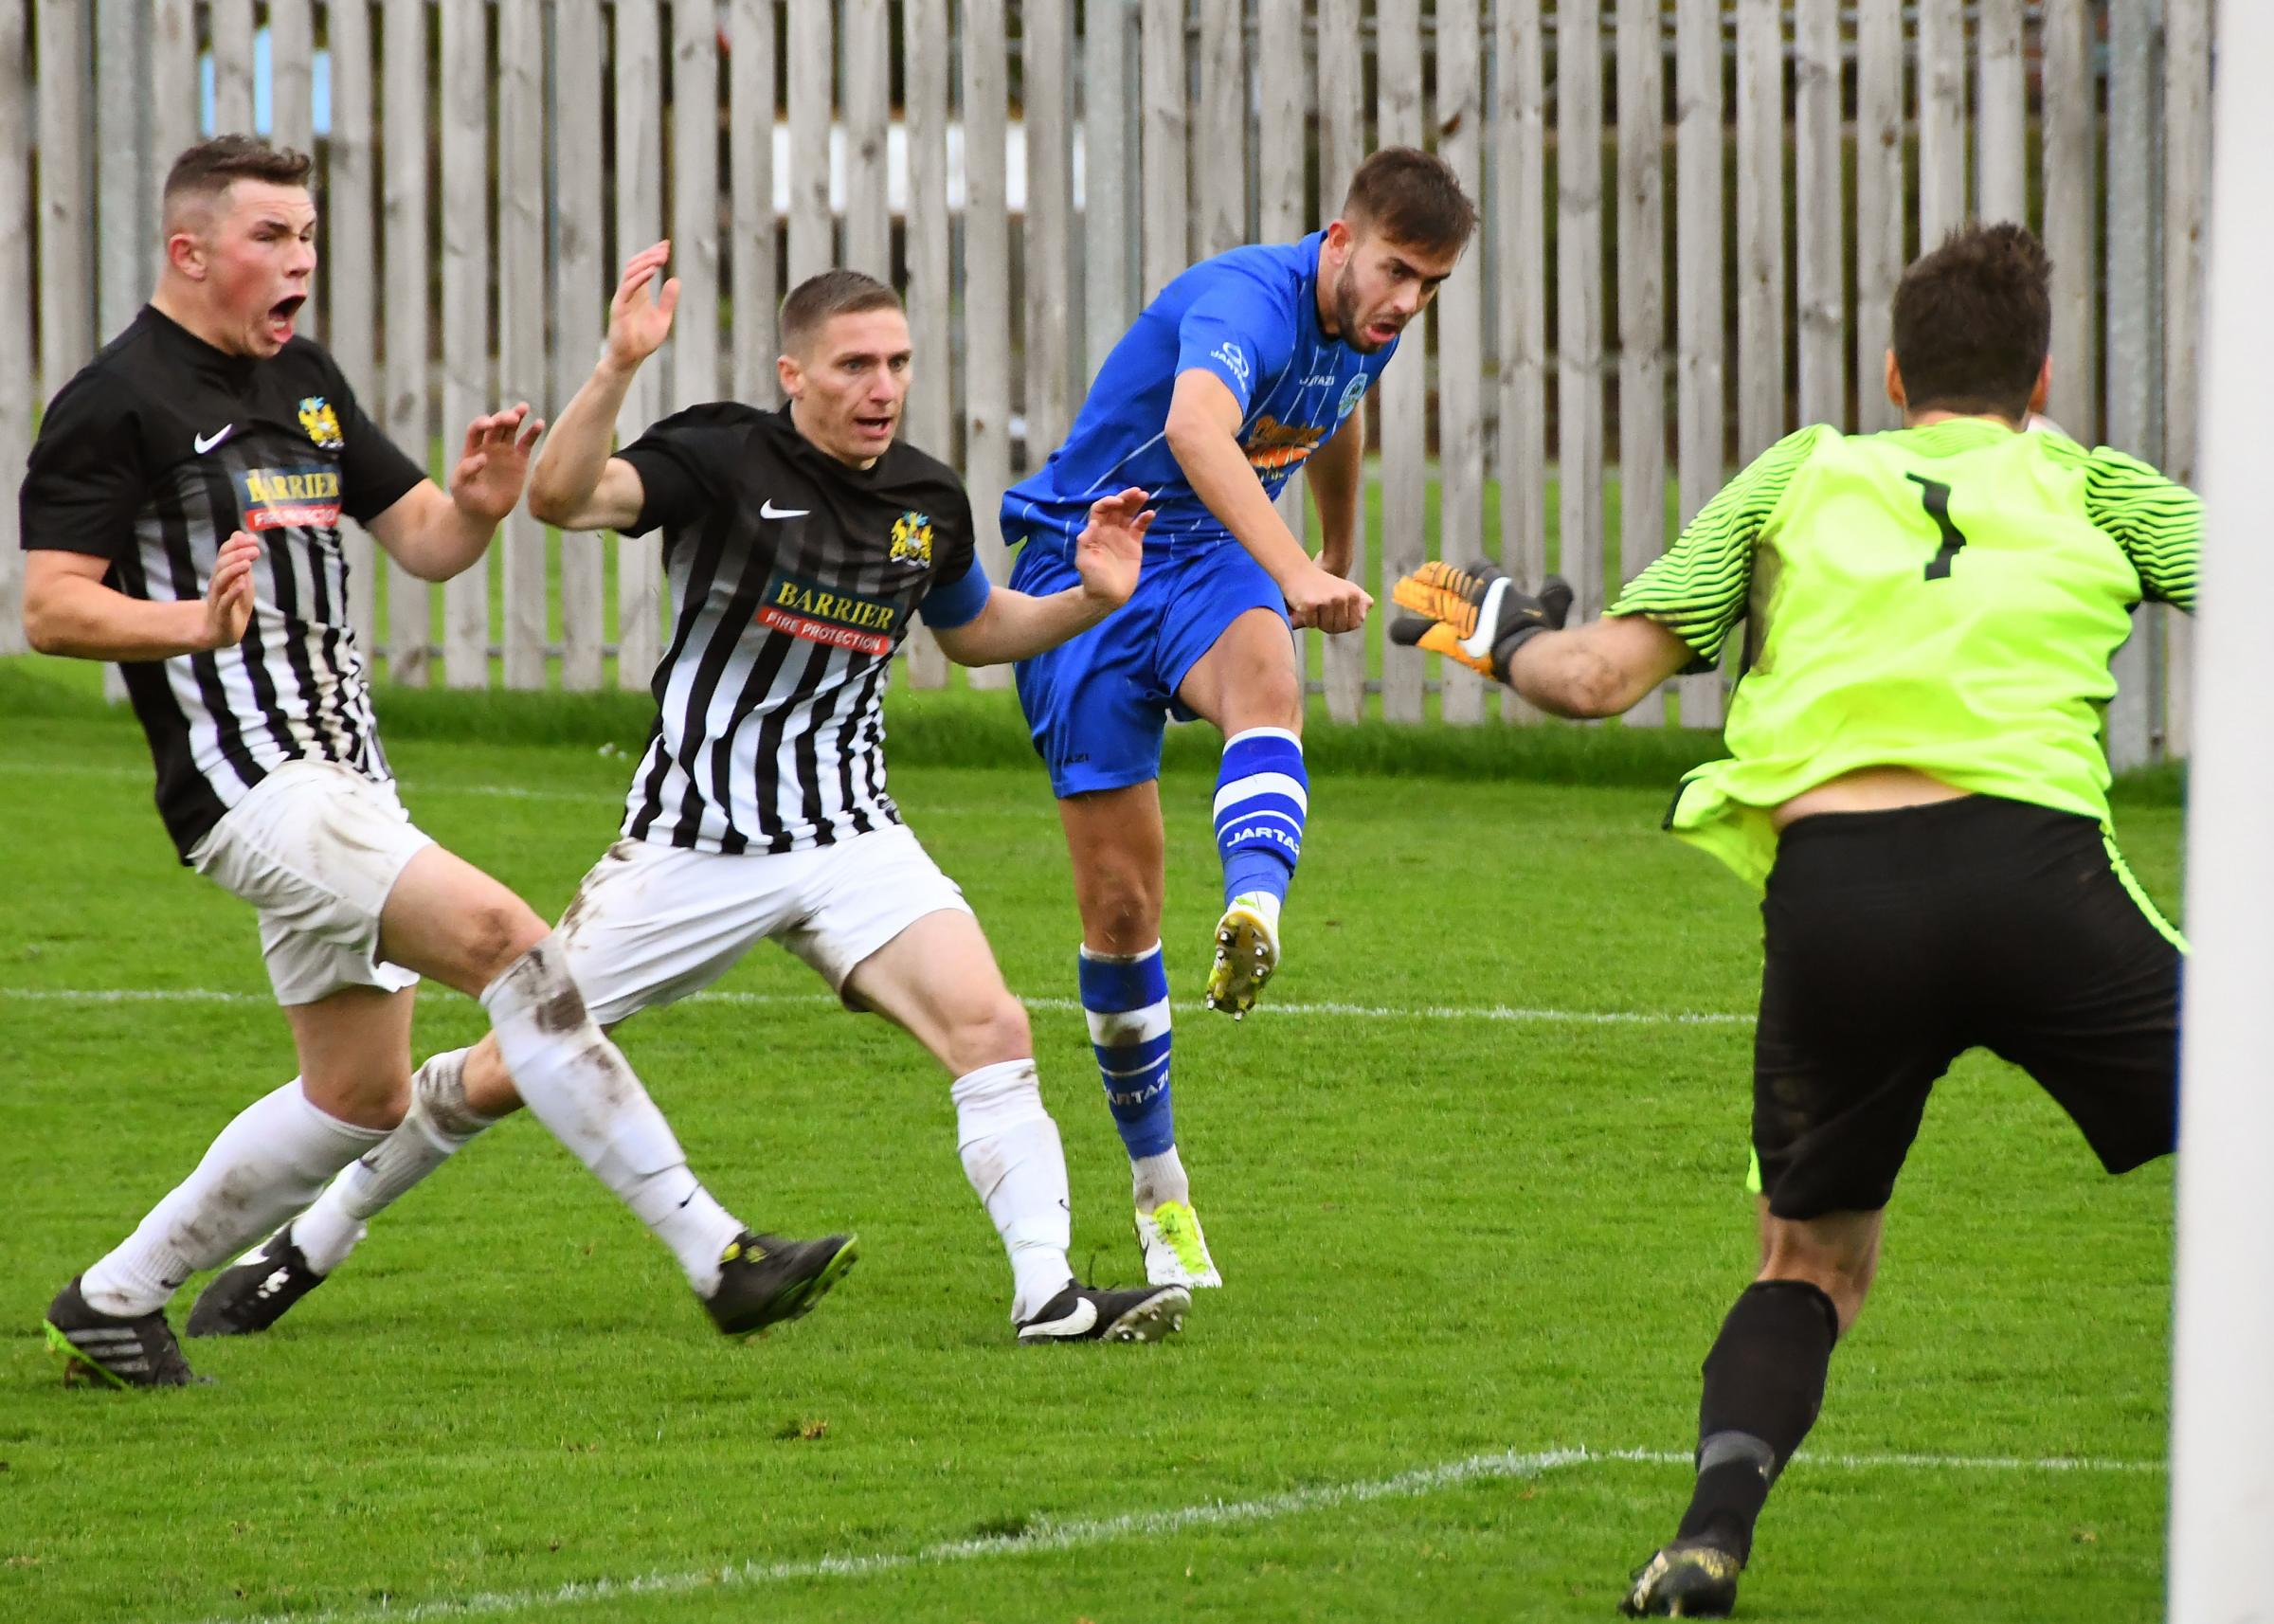 KEY STRIKE: Joe Danby, who got the all-important equaliser for Pickering Town at Barton on Thursday night which kept their promotion hopes alive going into their final game